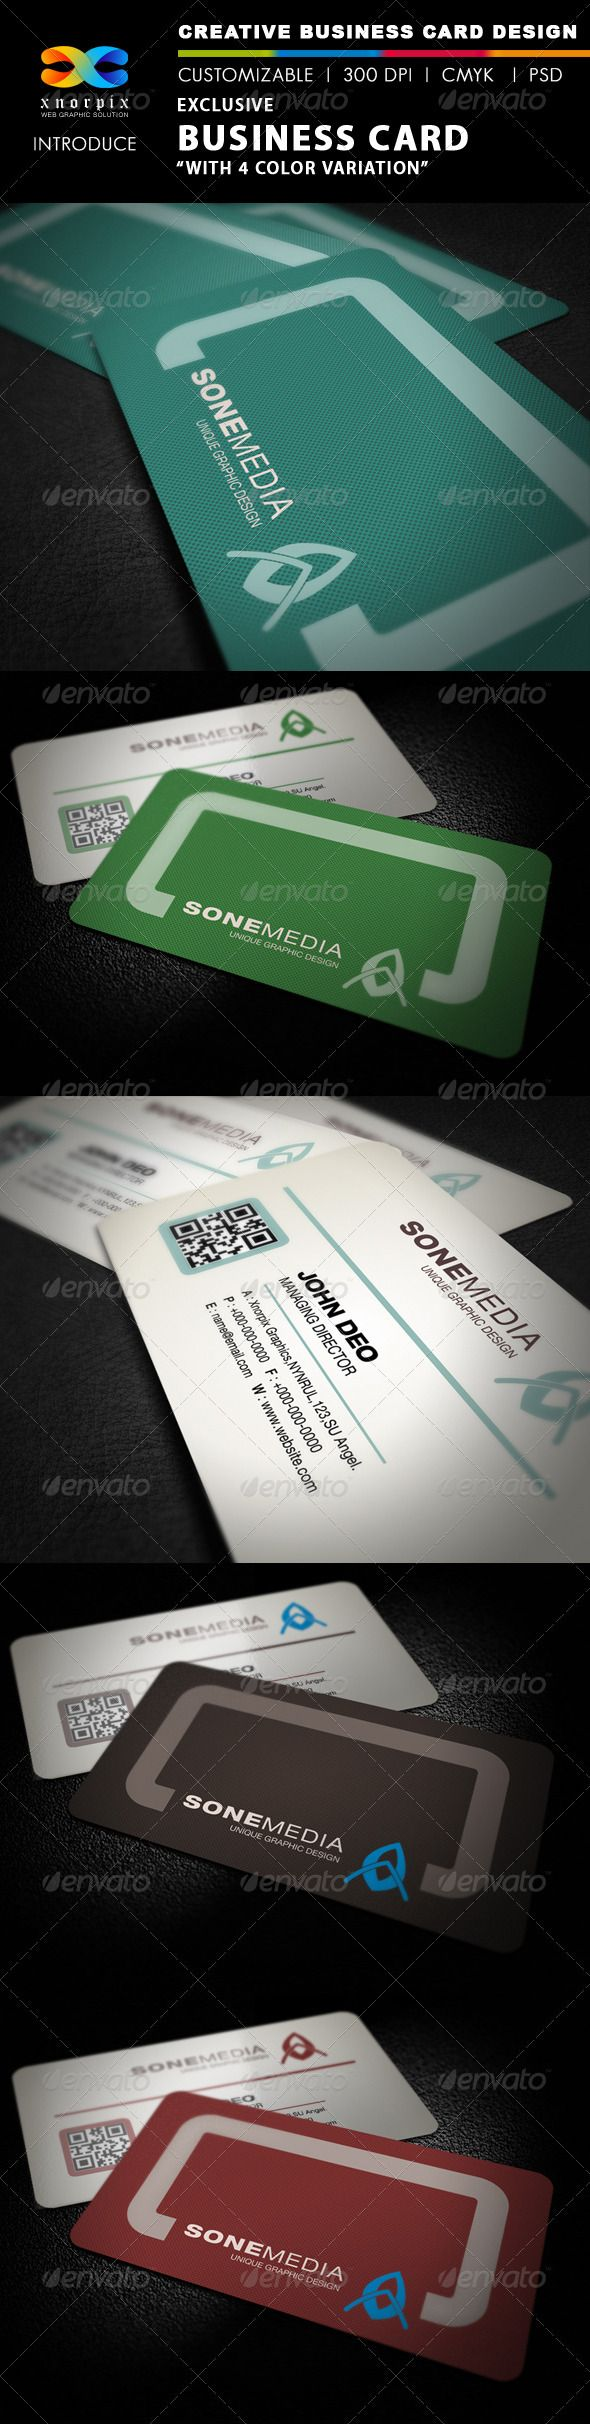 20 best photoshop world free download images on pinterest exclusive business card reheart Choice Image